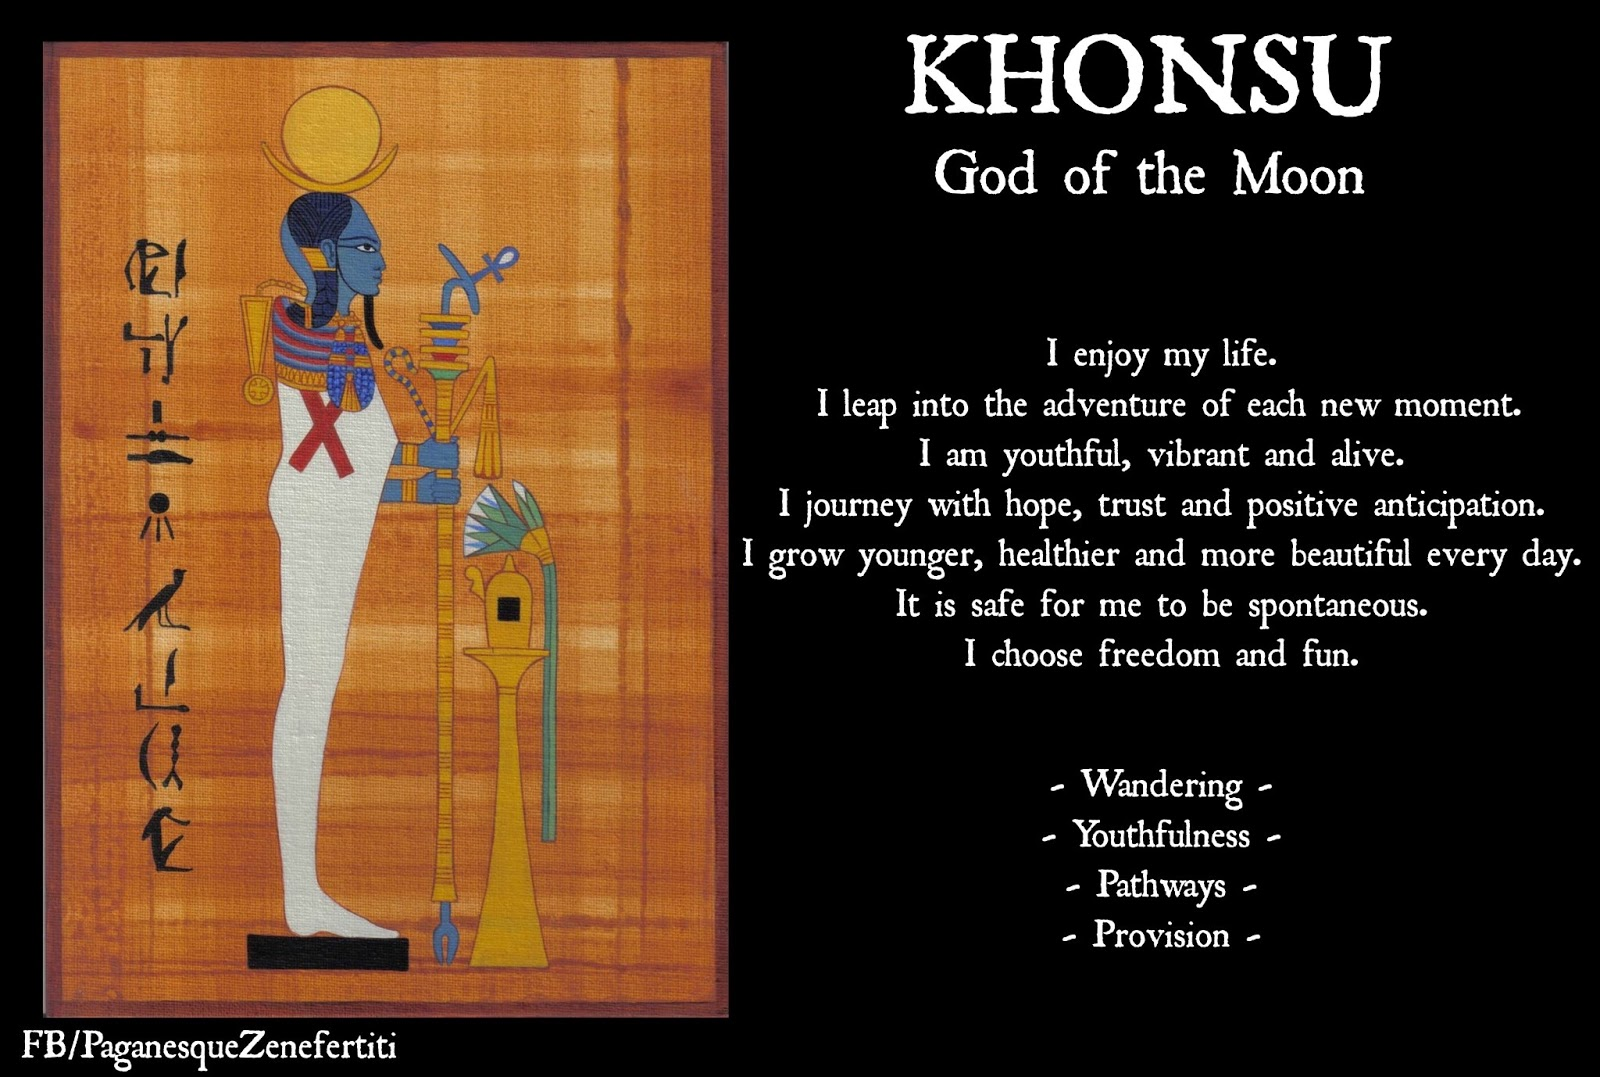 Paganesque june 2013 khonsu god of the moon biocorpaavc Gallery